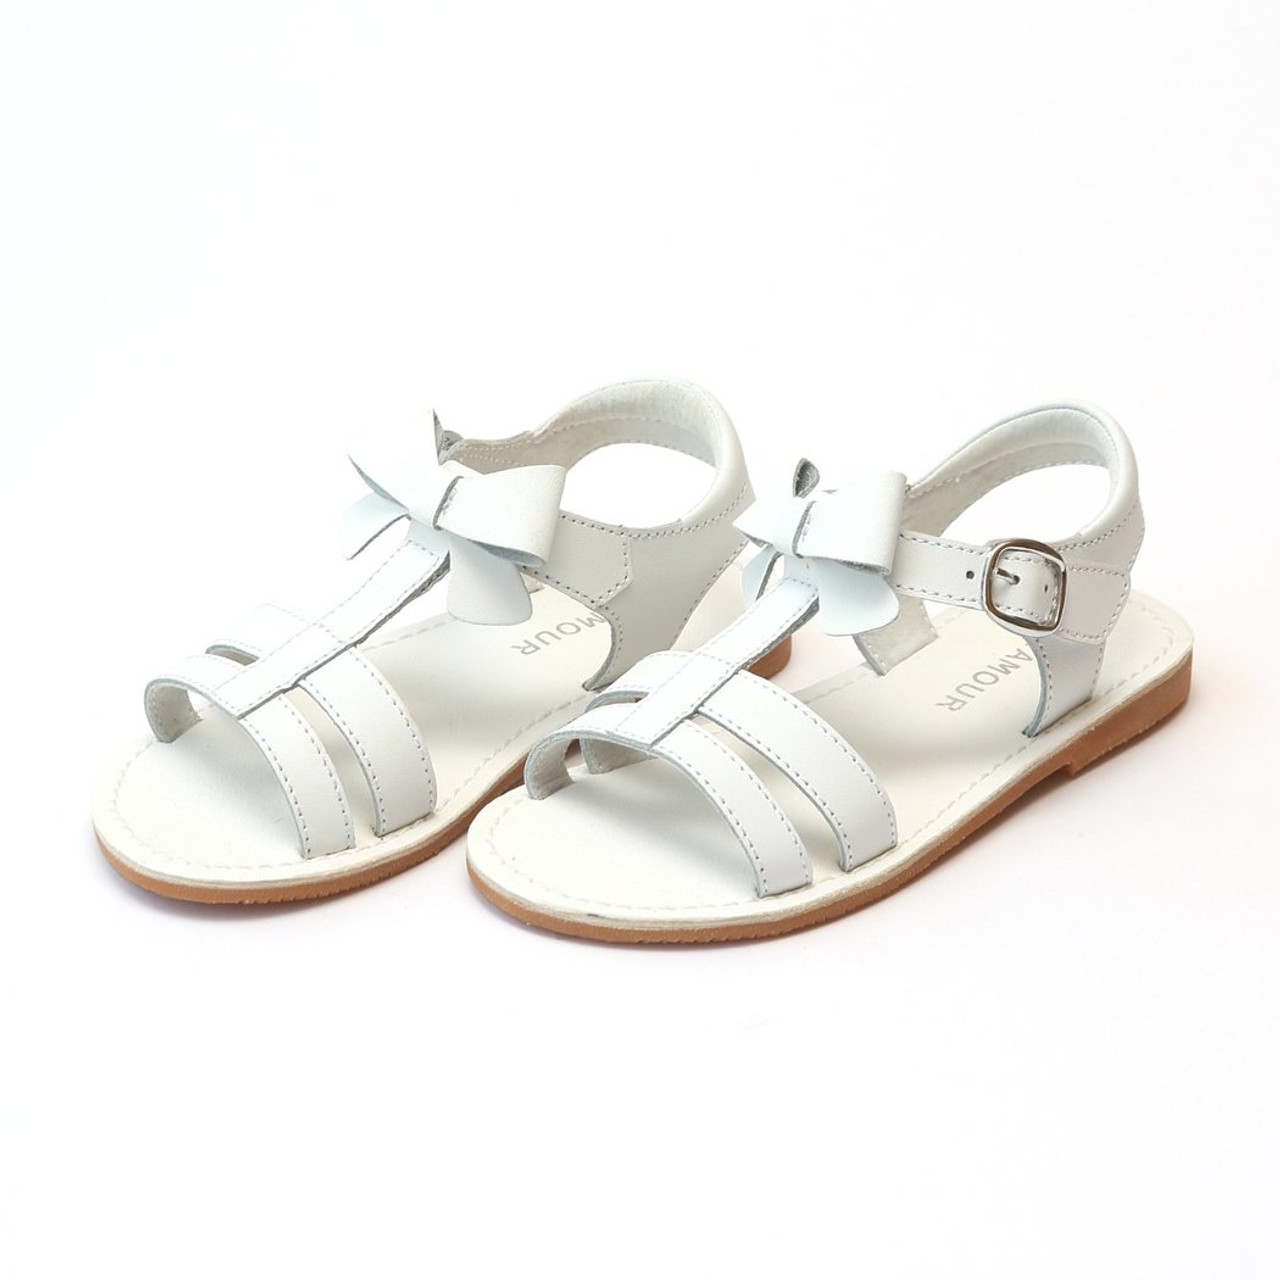 fe6807af756dd Janie T-Strap Bow White Sandal. Now   42.00. (You save ). Availability  In  Stock  SKU  ISCL-K470S-18  Weight  16 Ounces